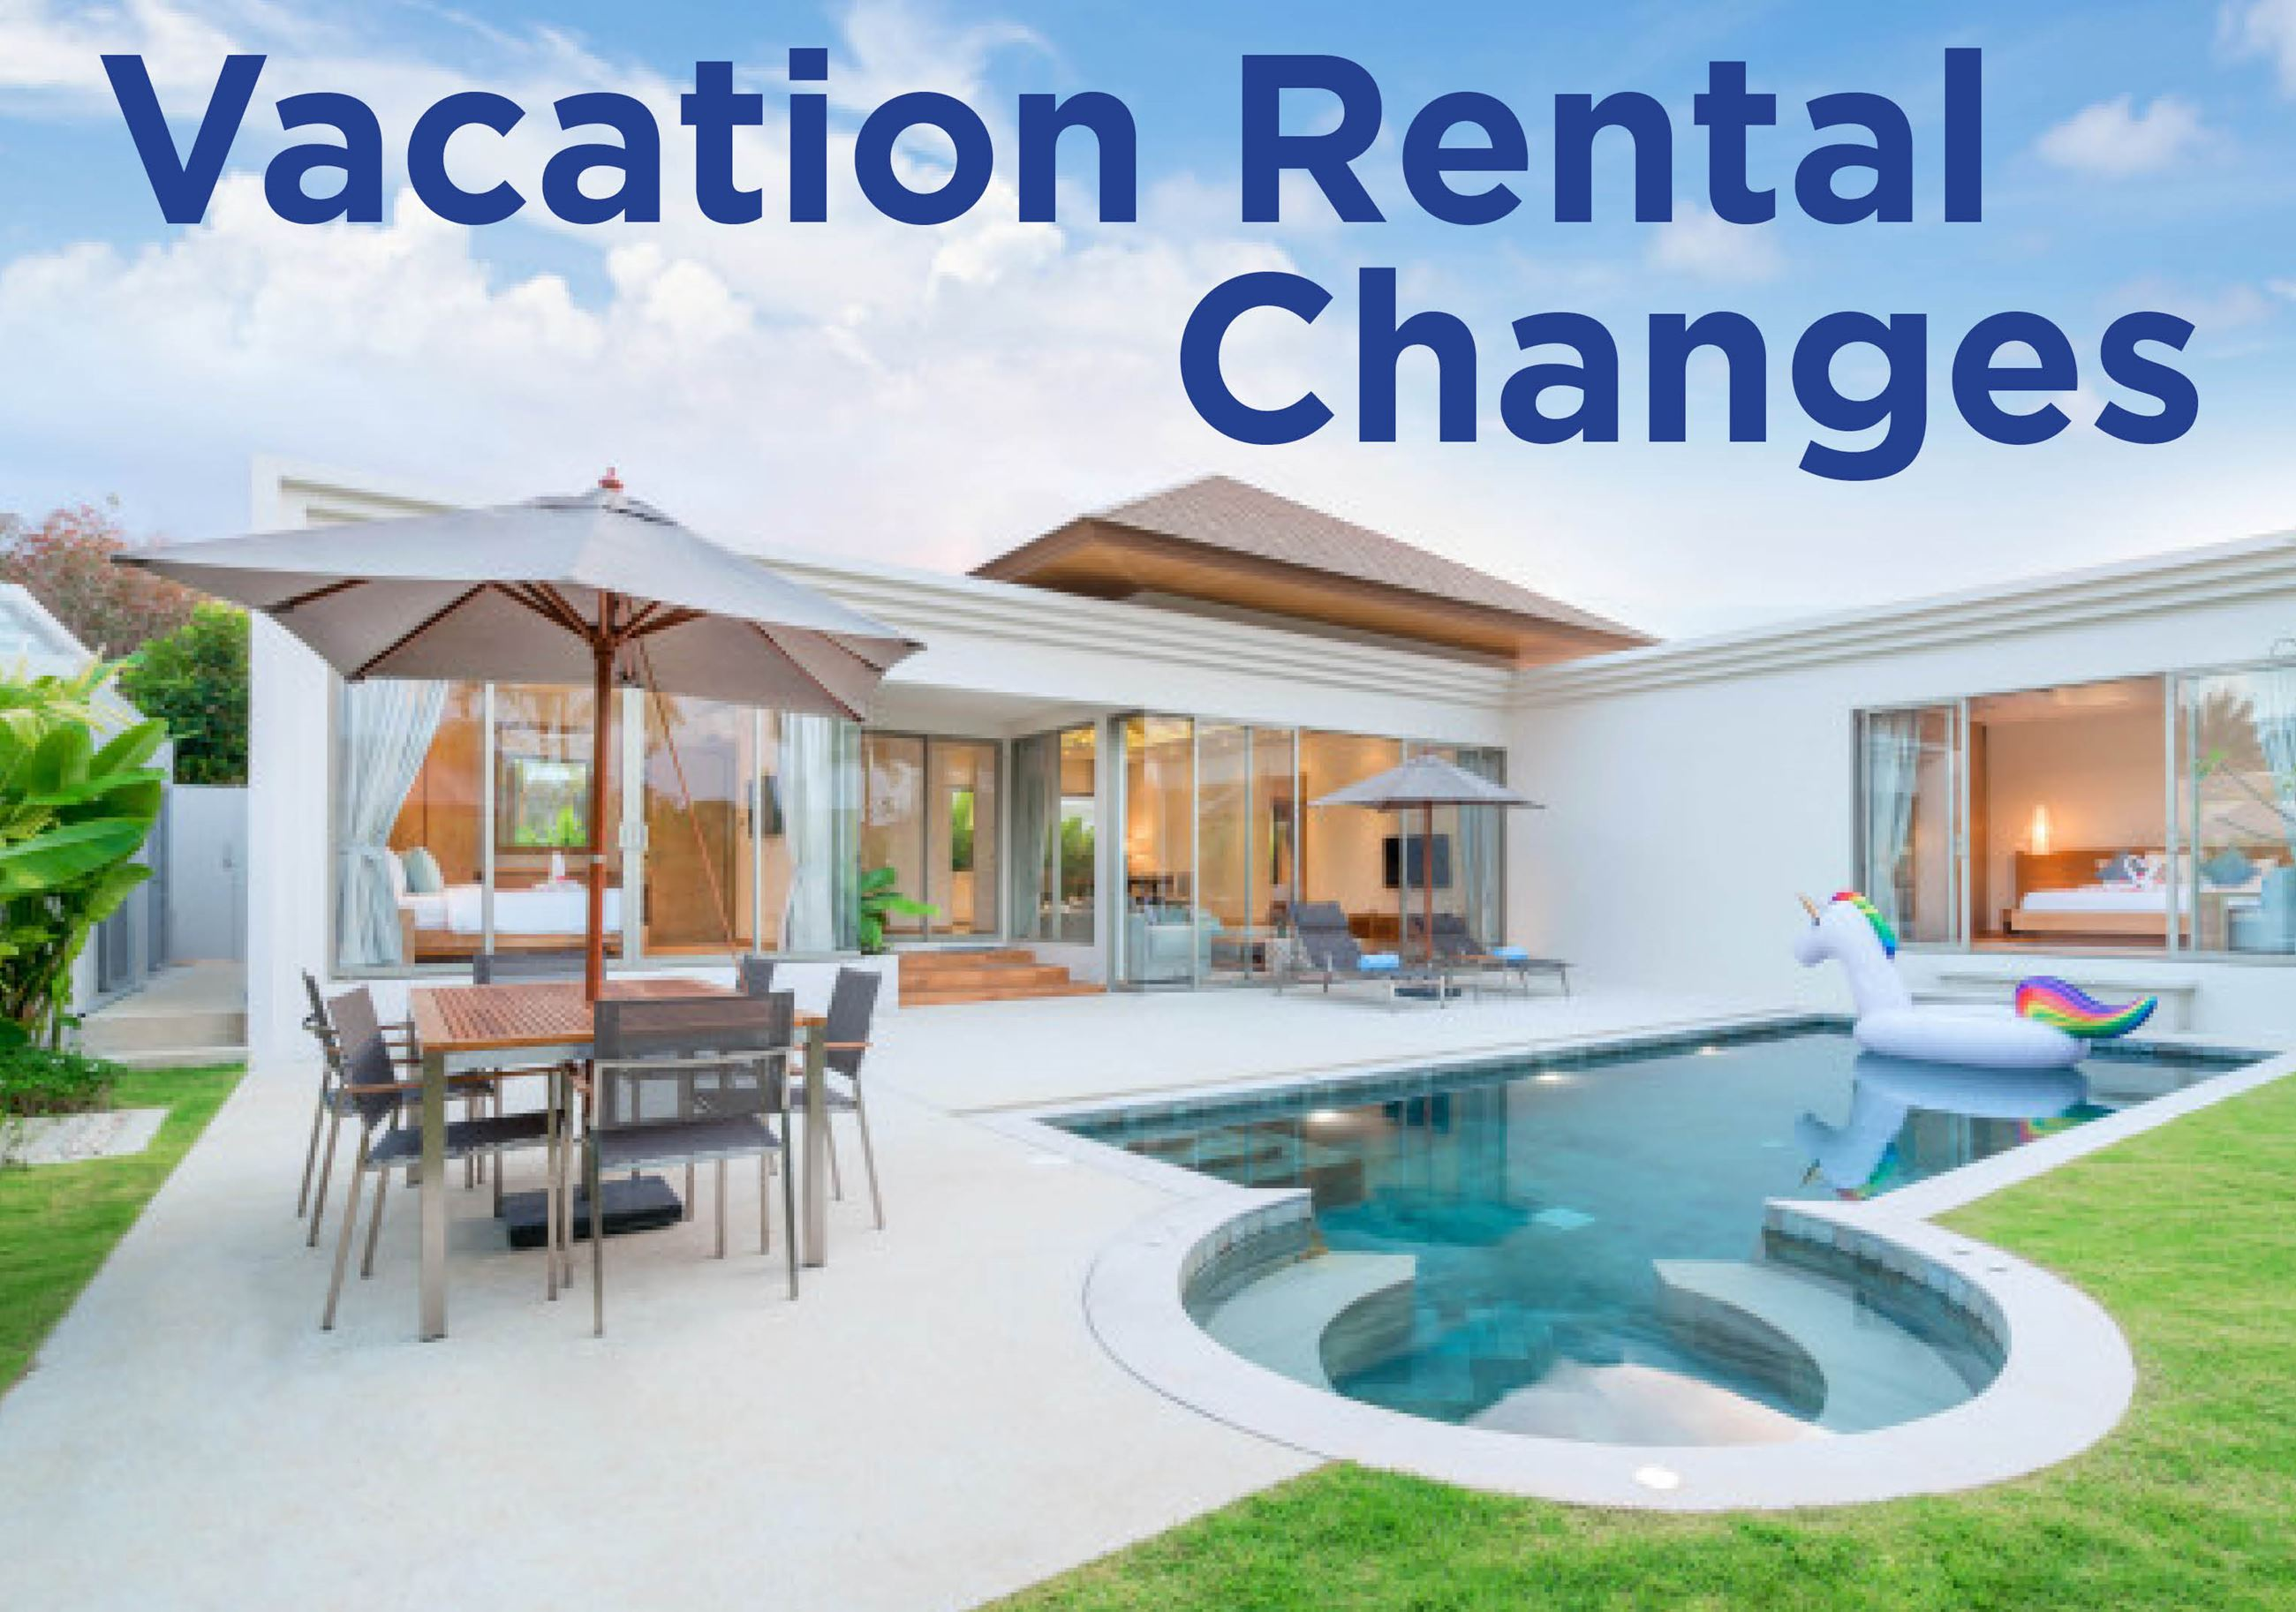 Vacation Rental Changes